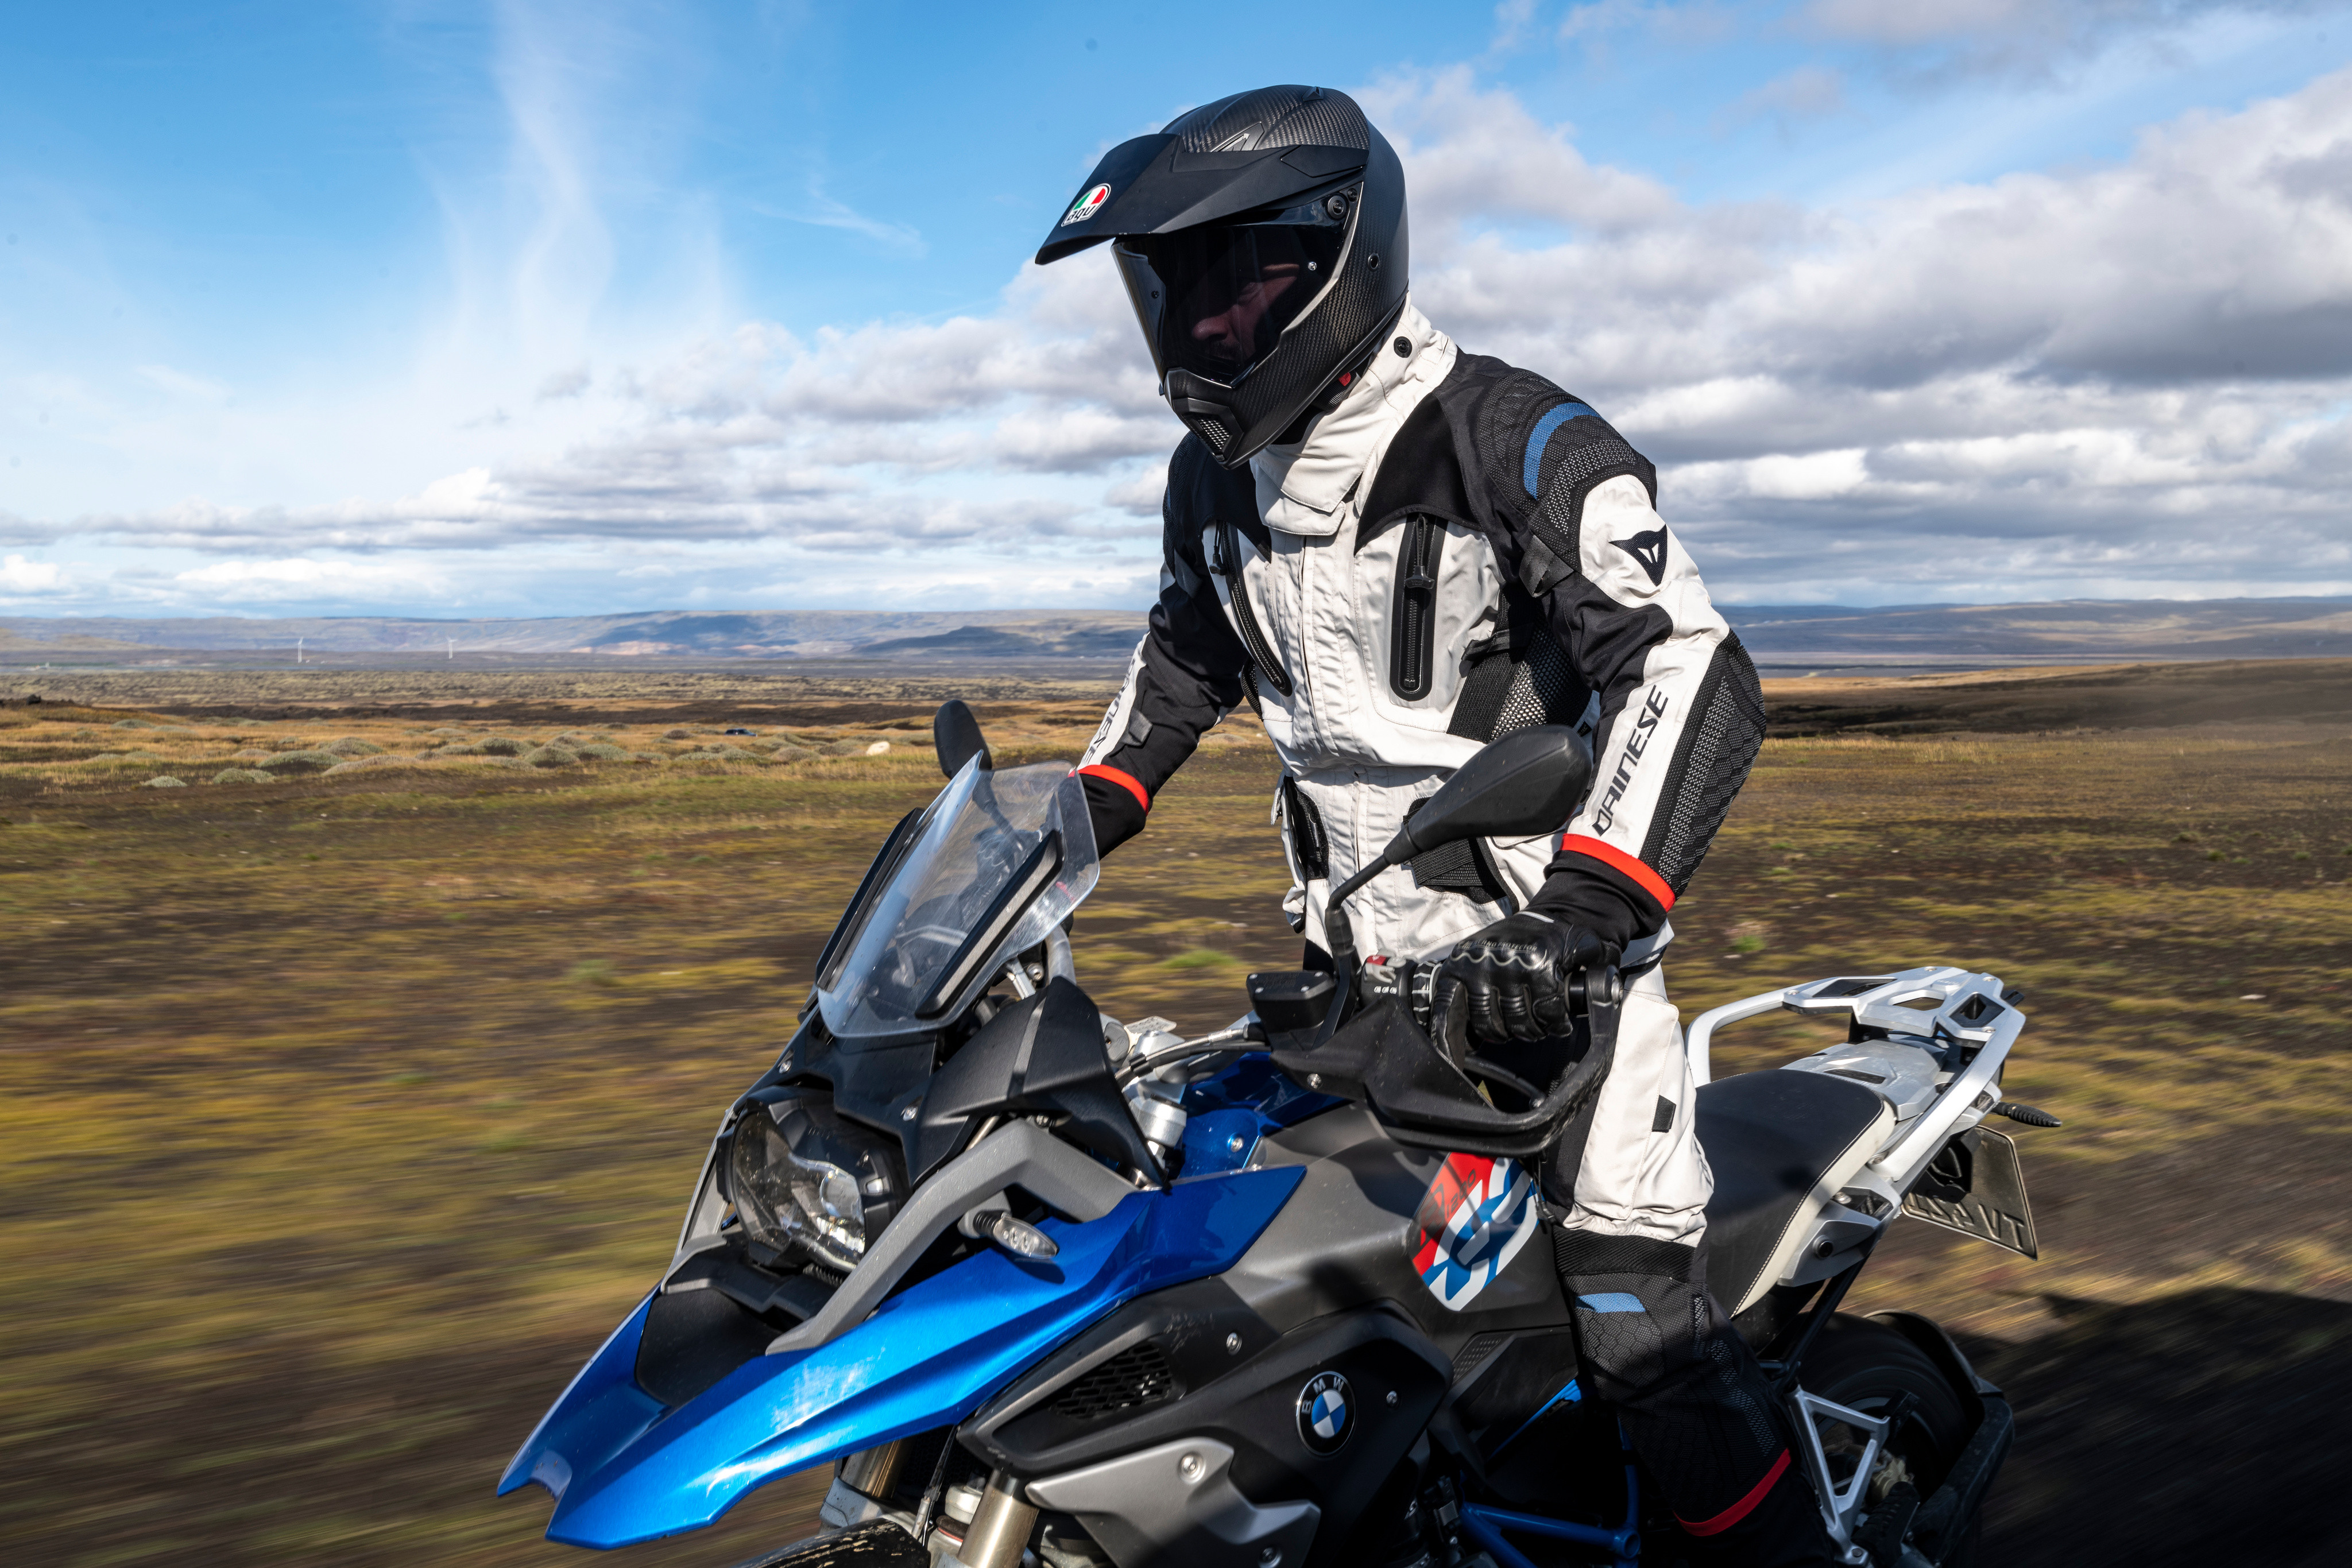 New biking kit from Dainese called the Explorer Collection